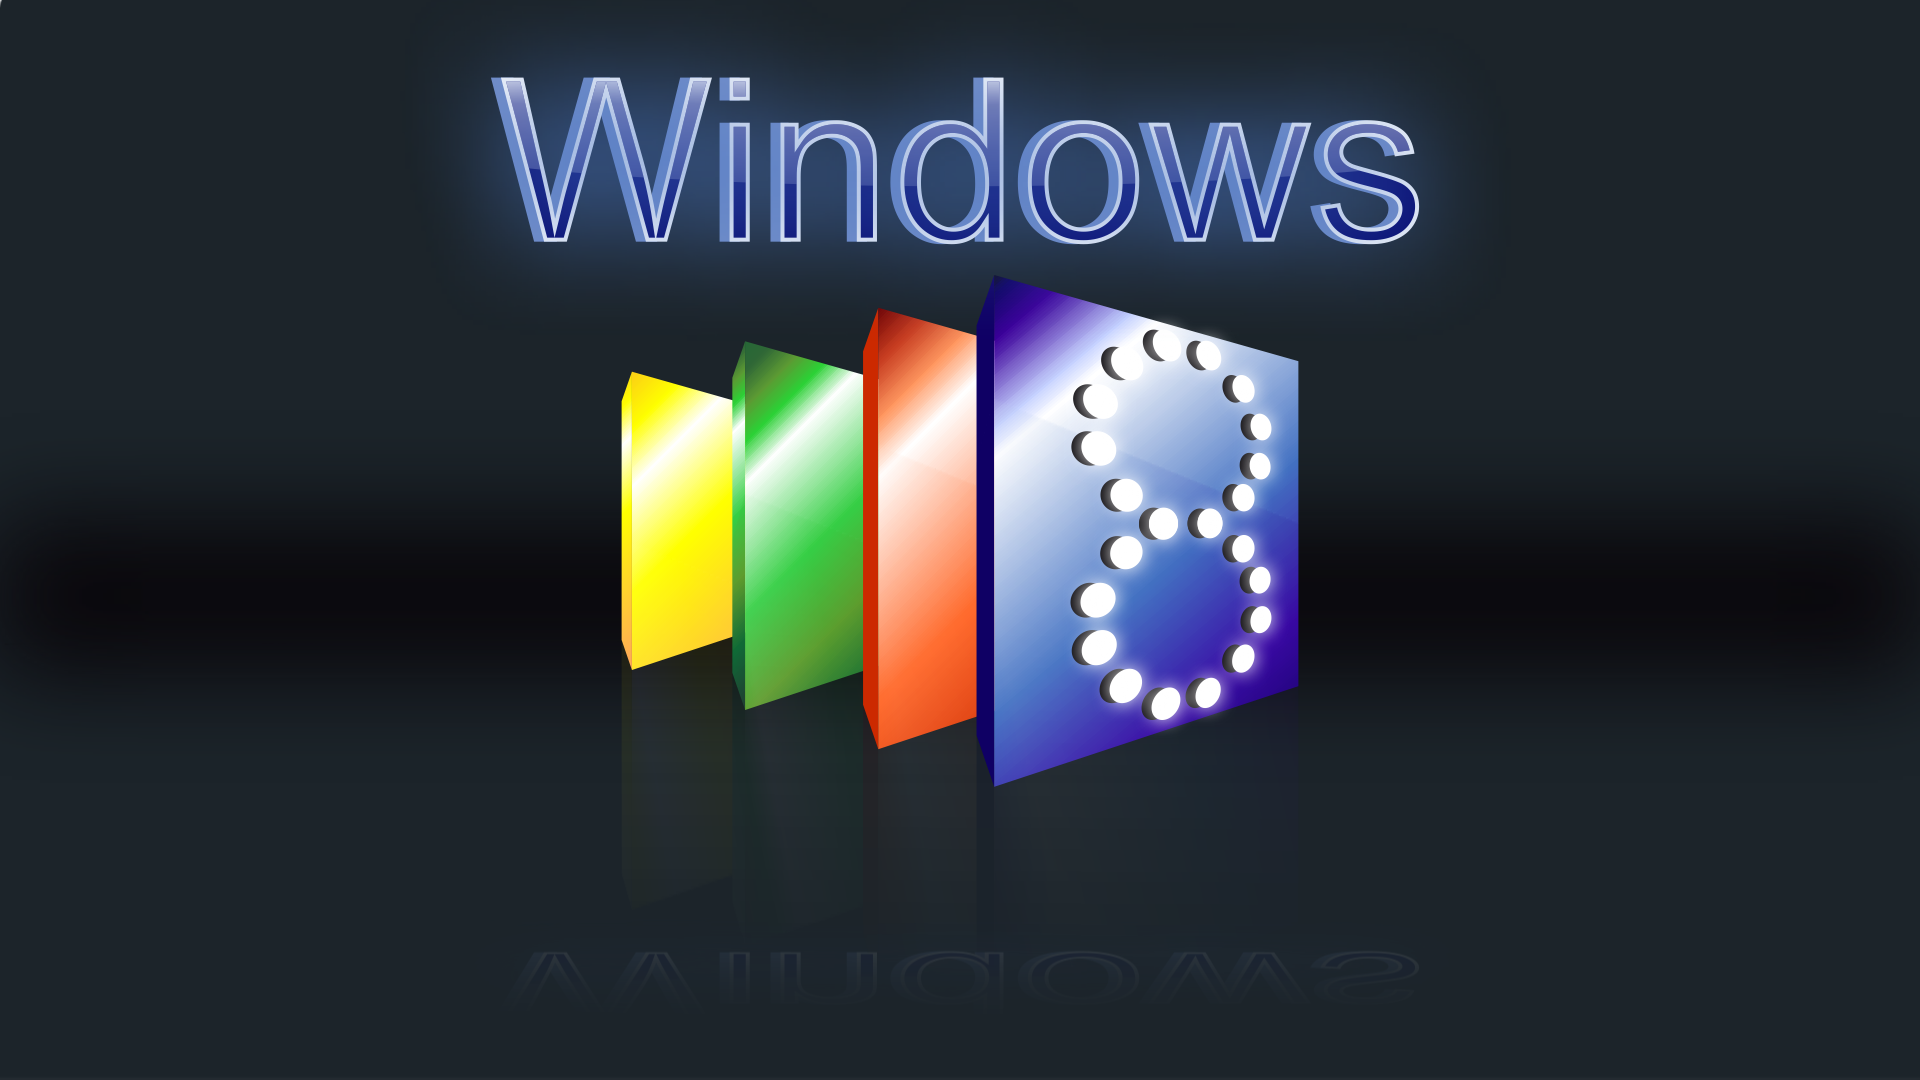 wallpapers-windows